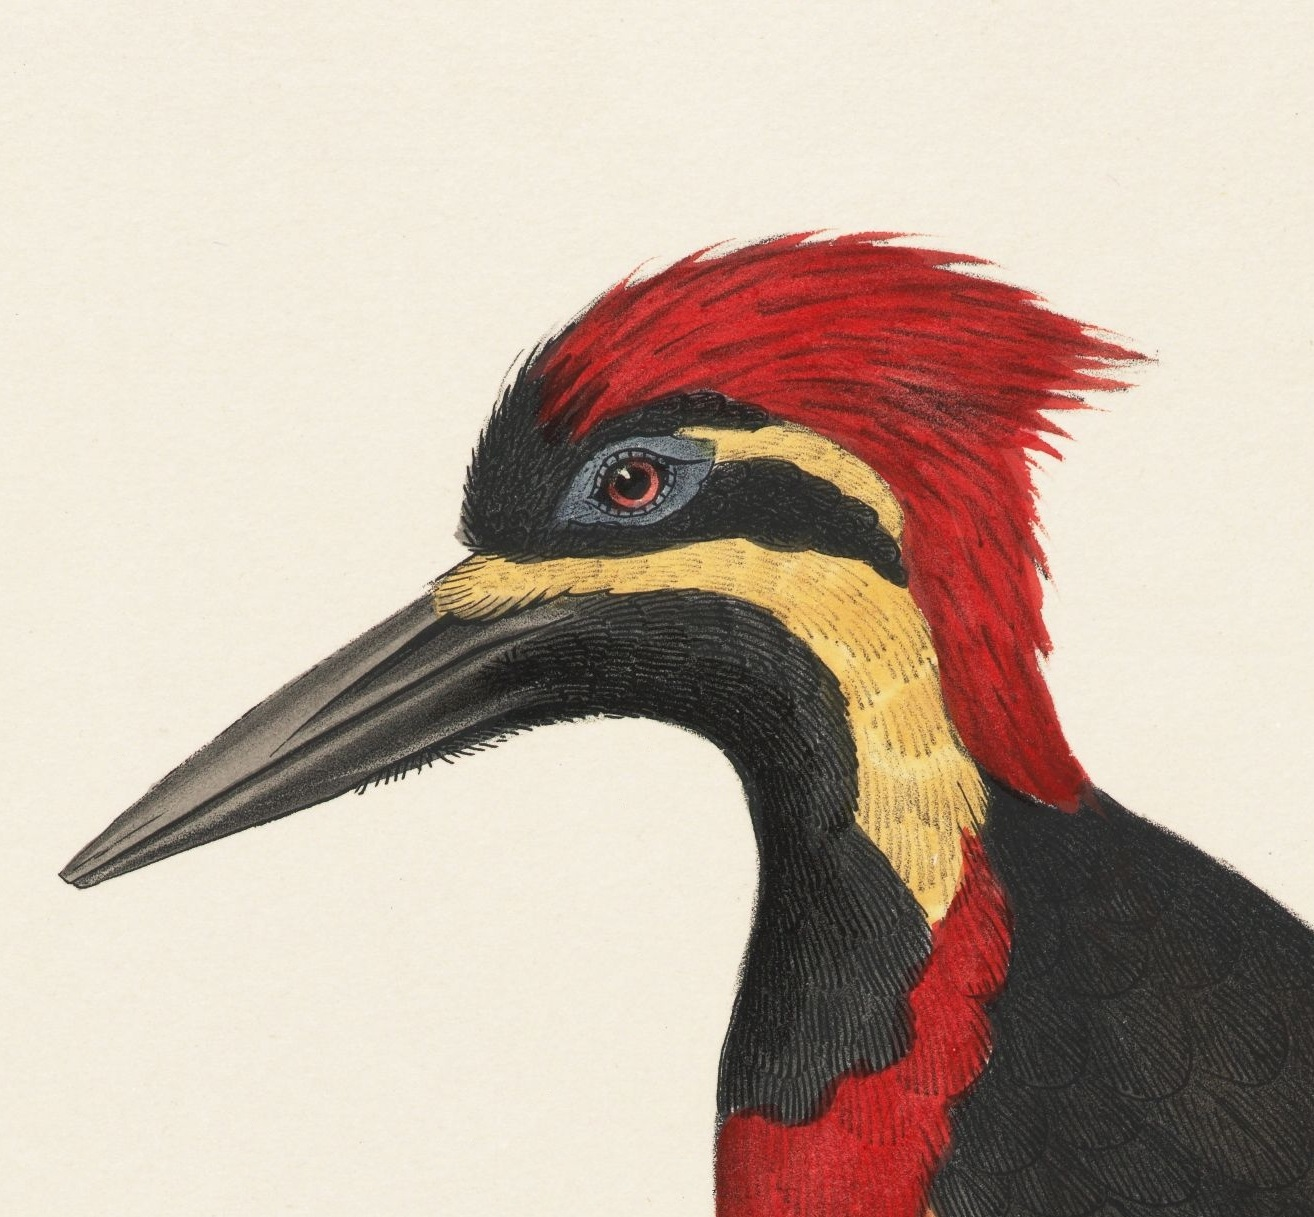 ornithology illustration - woodpecker